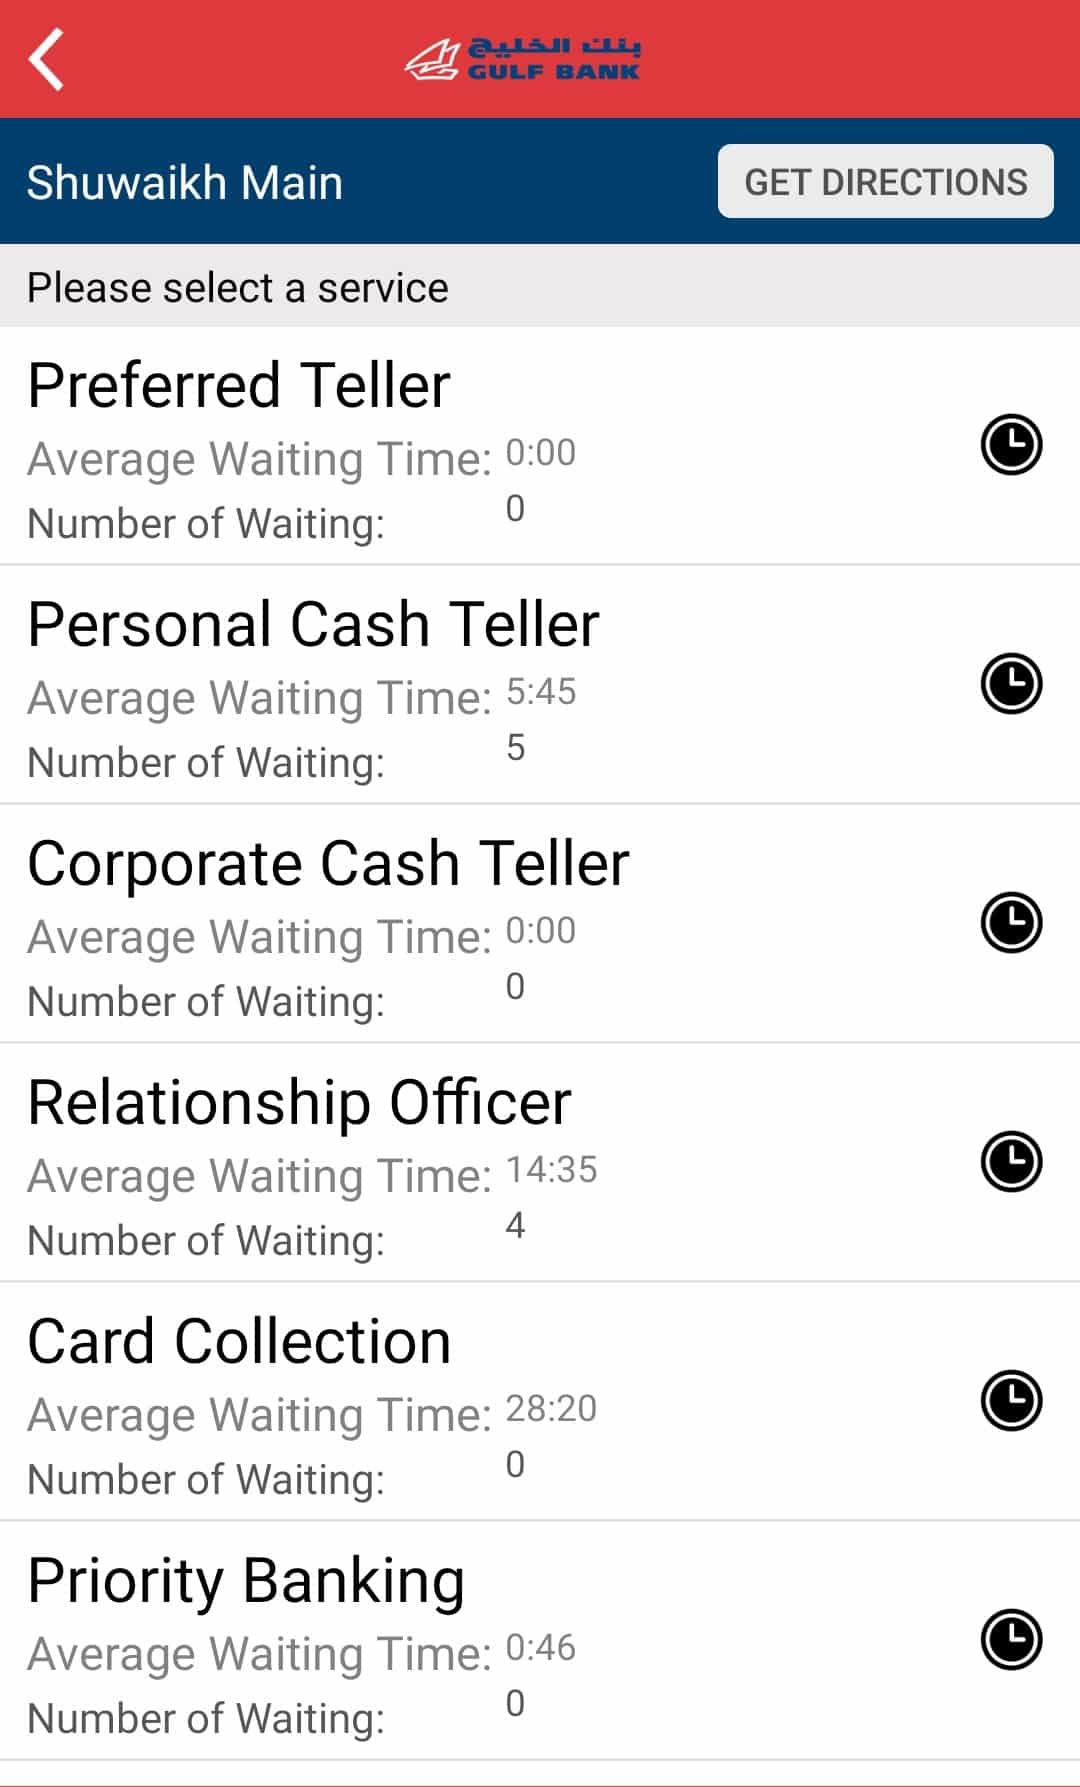 Gulf Bank App For Booking Branch Appointments, iiQ8 7